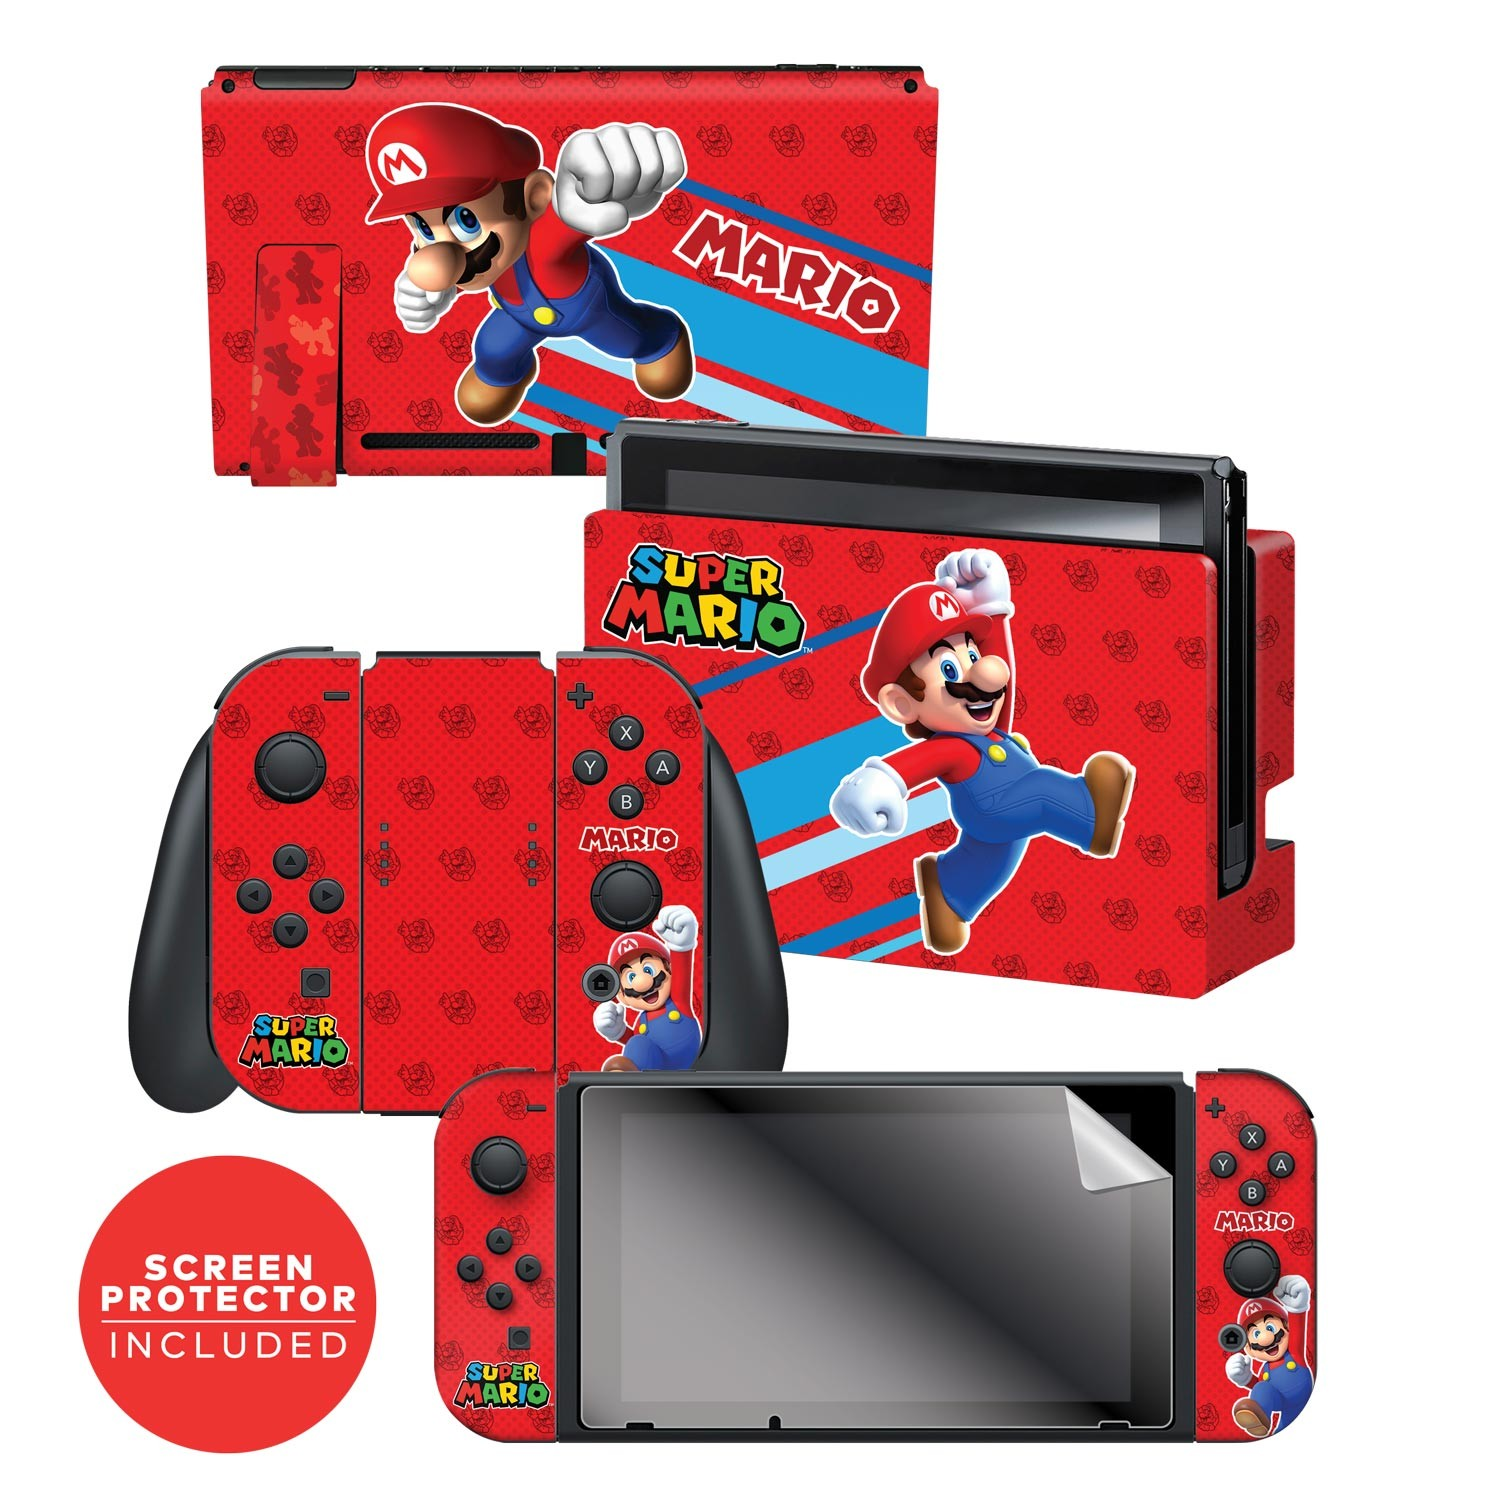 "Super Mario™ ""Super Mario"" Nintendo Switch™ Console skin + Dock Skin + Joy-Con™ skin +  Joy-Con™ Grip Skin + Screen Protector Bundle Assortment, Officially Licensed by Nintendo"